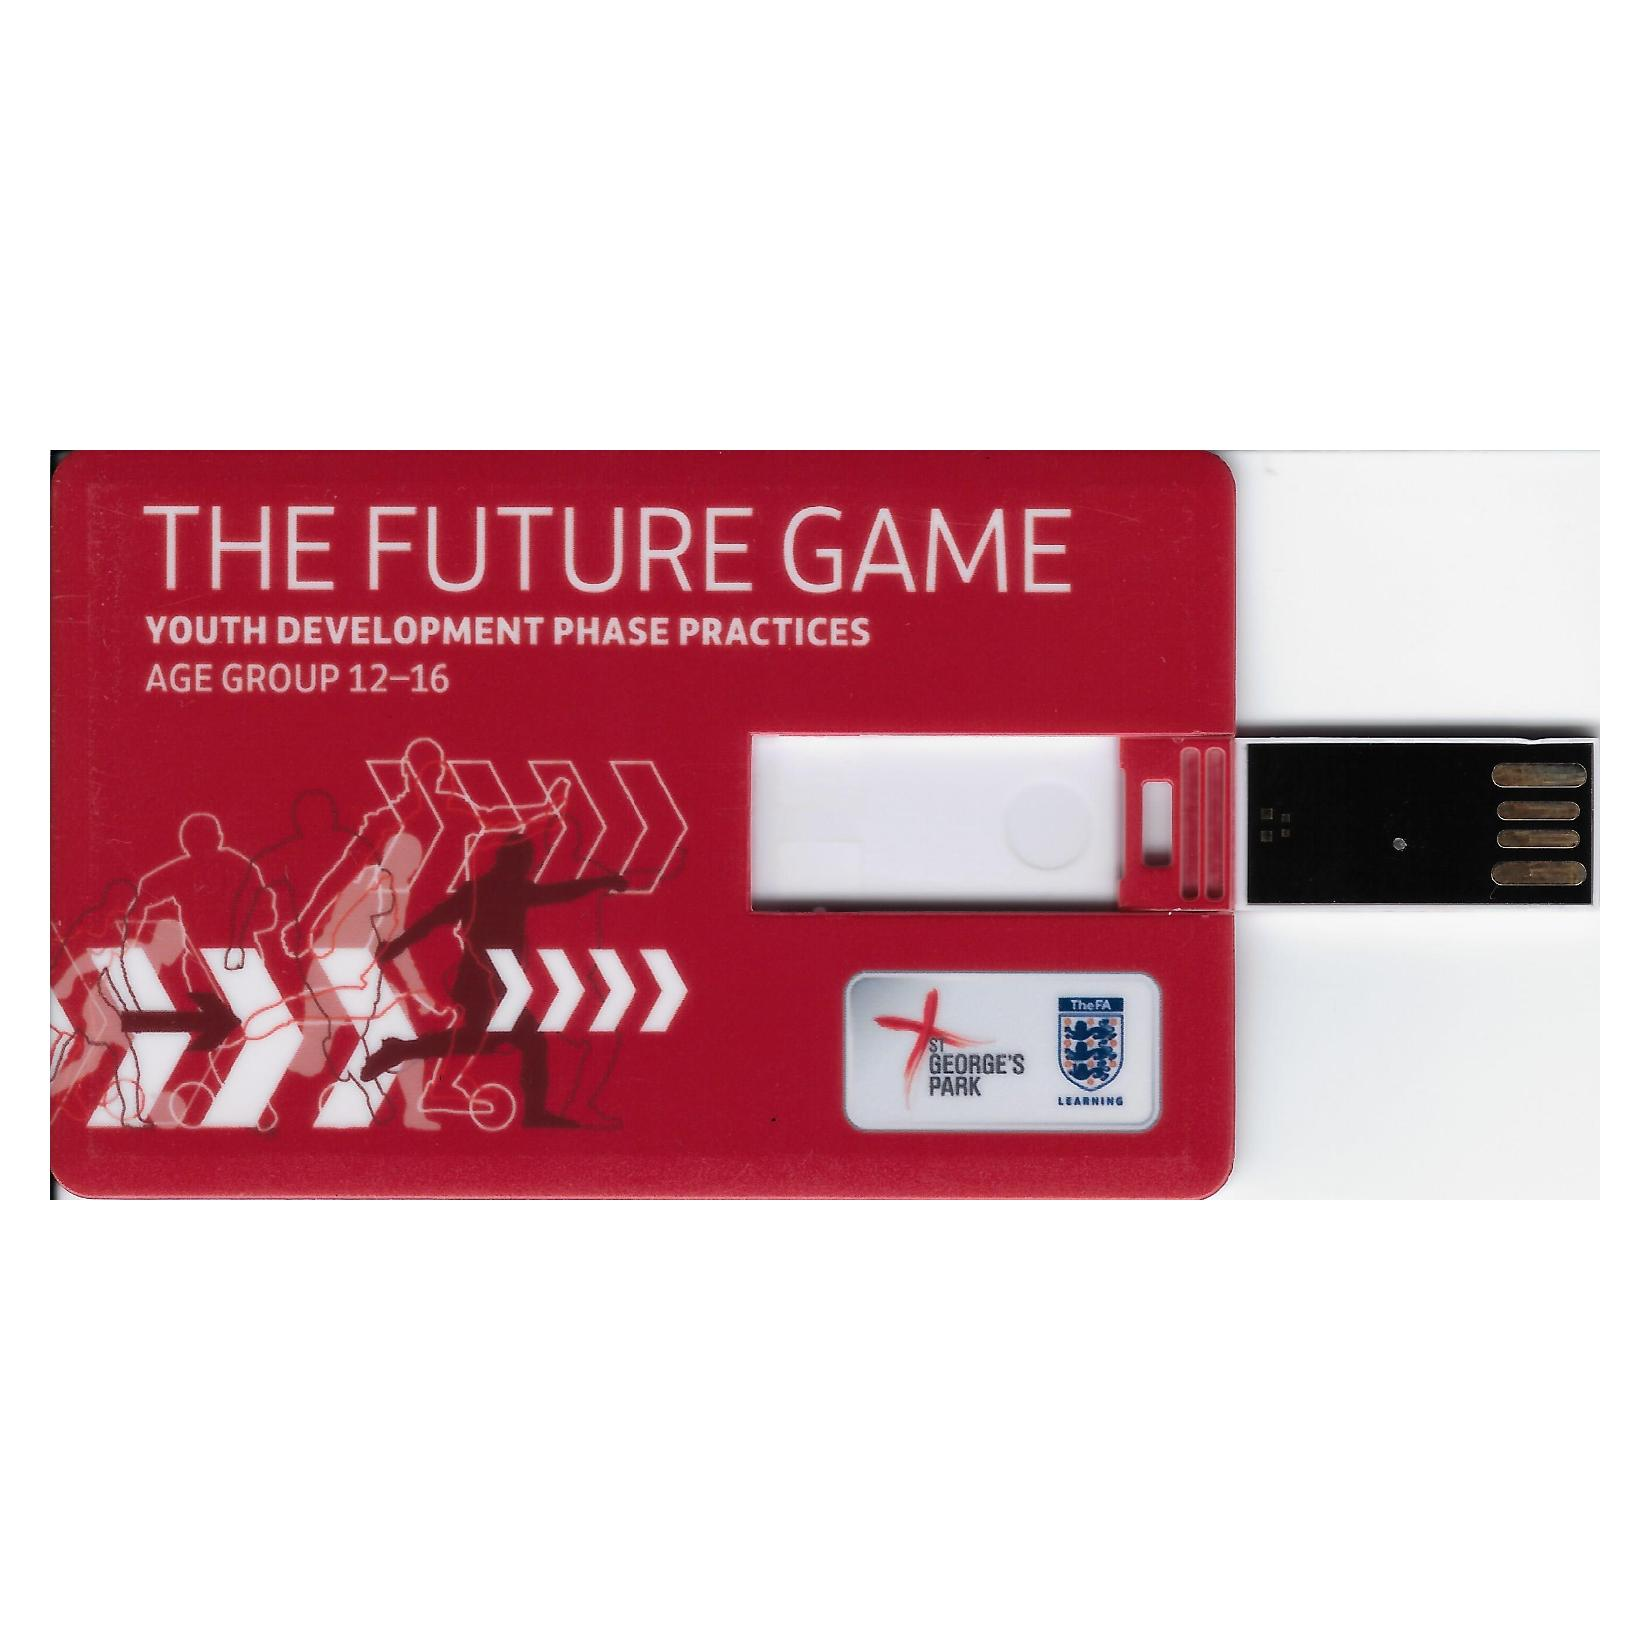 FA Future Game Live Coaching Sessions Yth Dev Phase - Usb  Misc-1-2104-4428